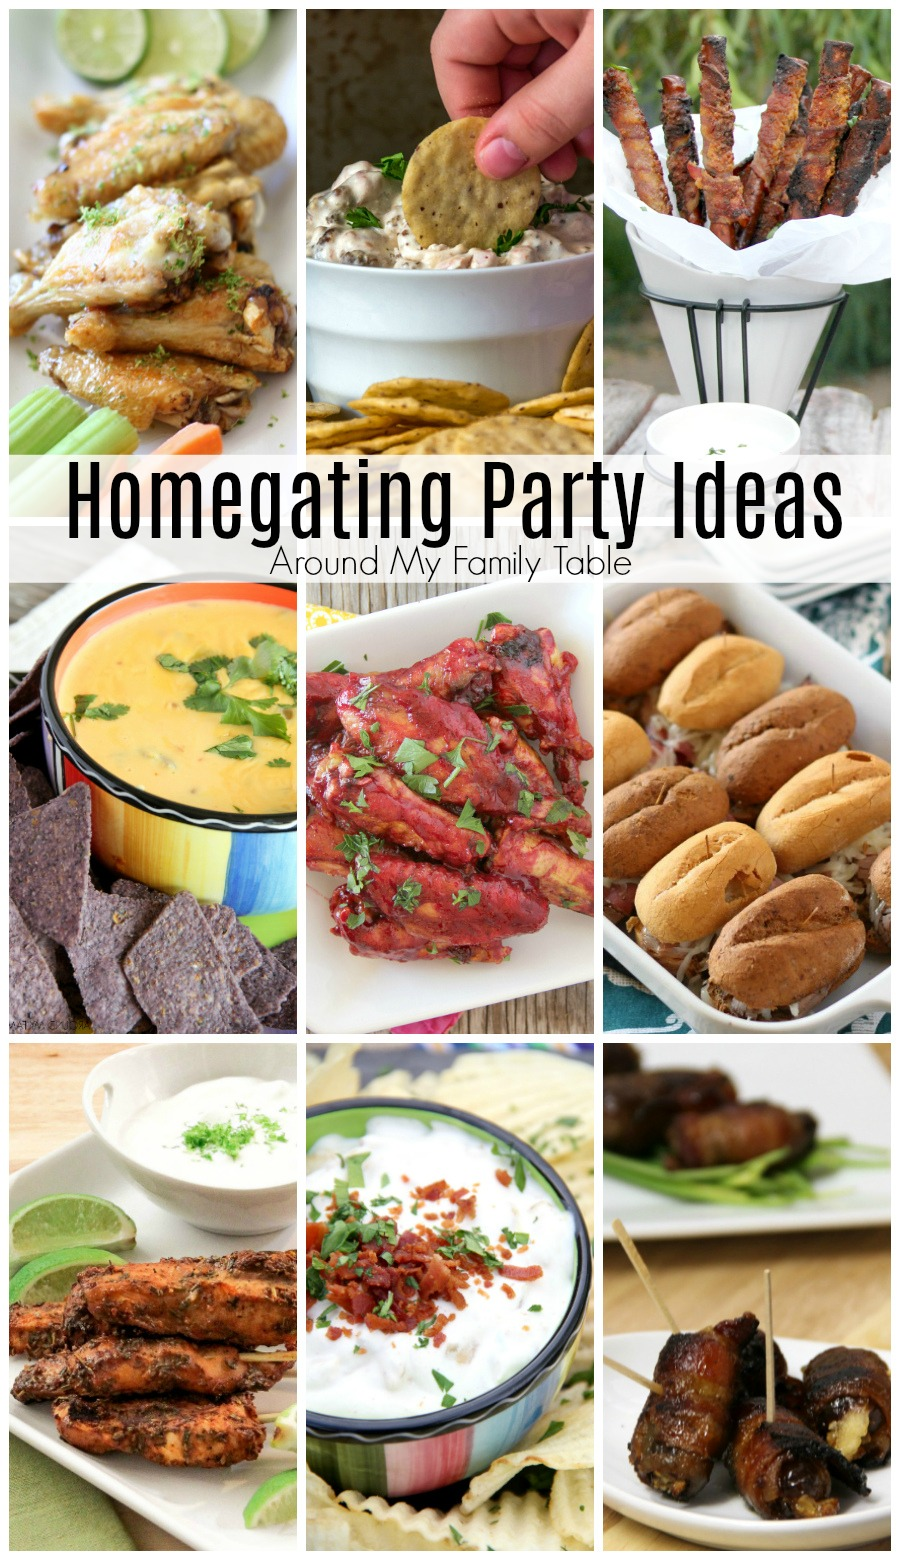 Delicious Homegating Party Ideas will win over your friends, family, and the rest of the team. These recipes are finger-licking good that you will be able to make year after year to feed guests during the whole football season. #homegating #footballfood #superbowl via @slingmama